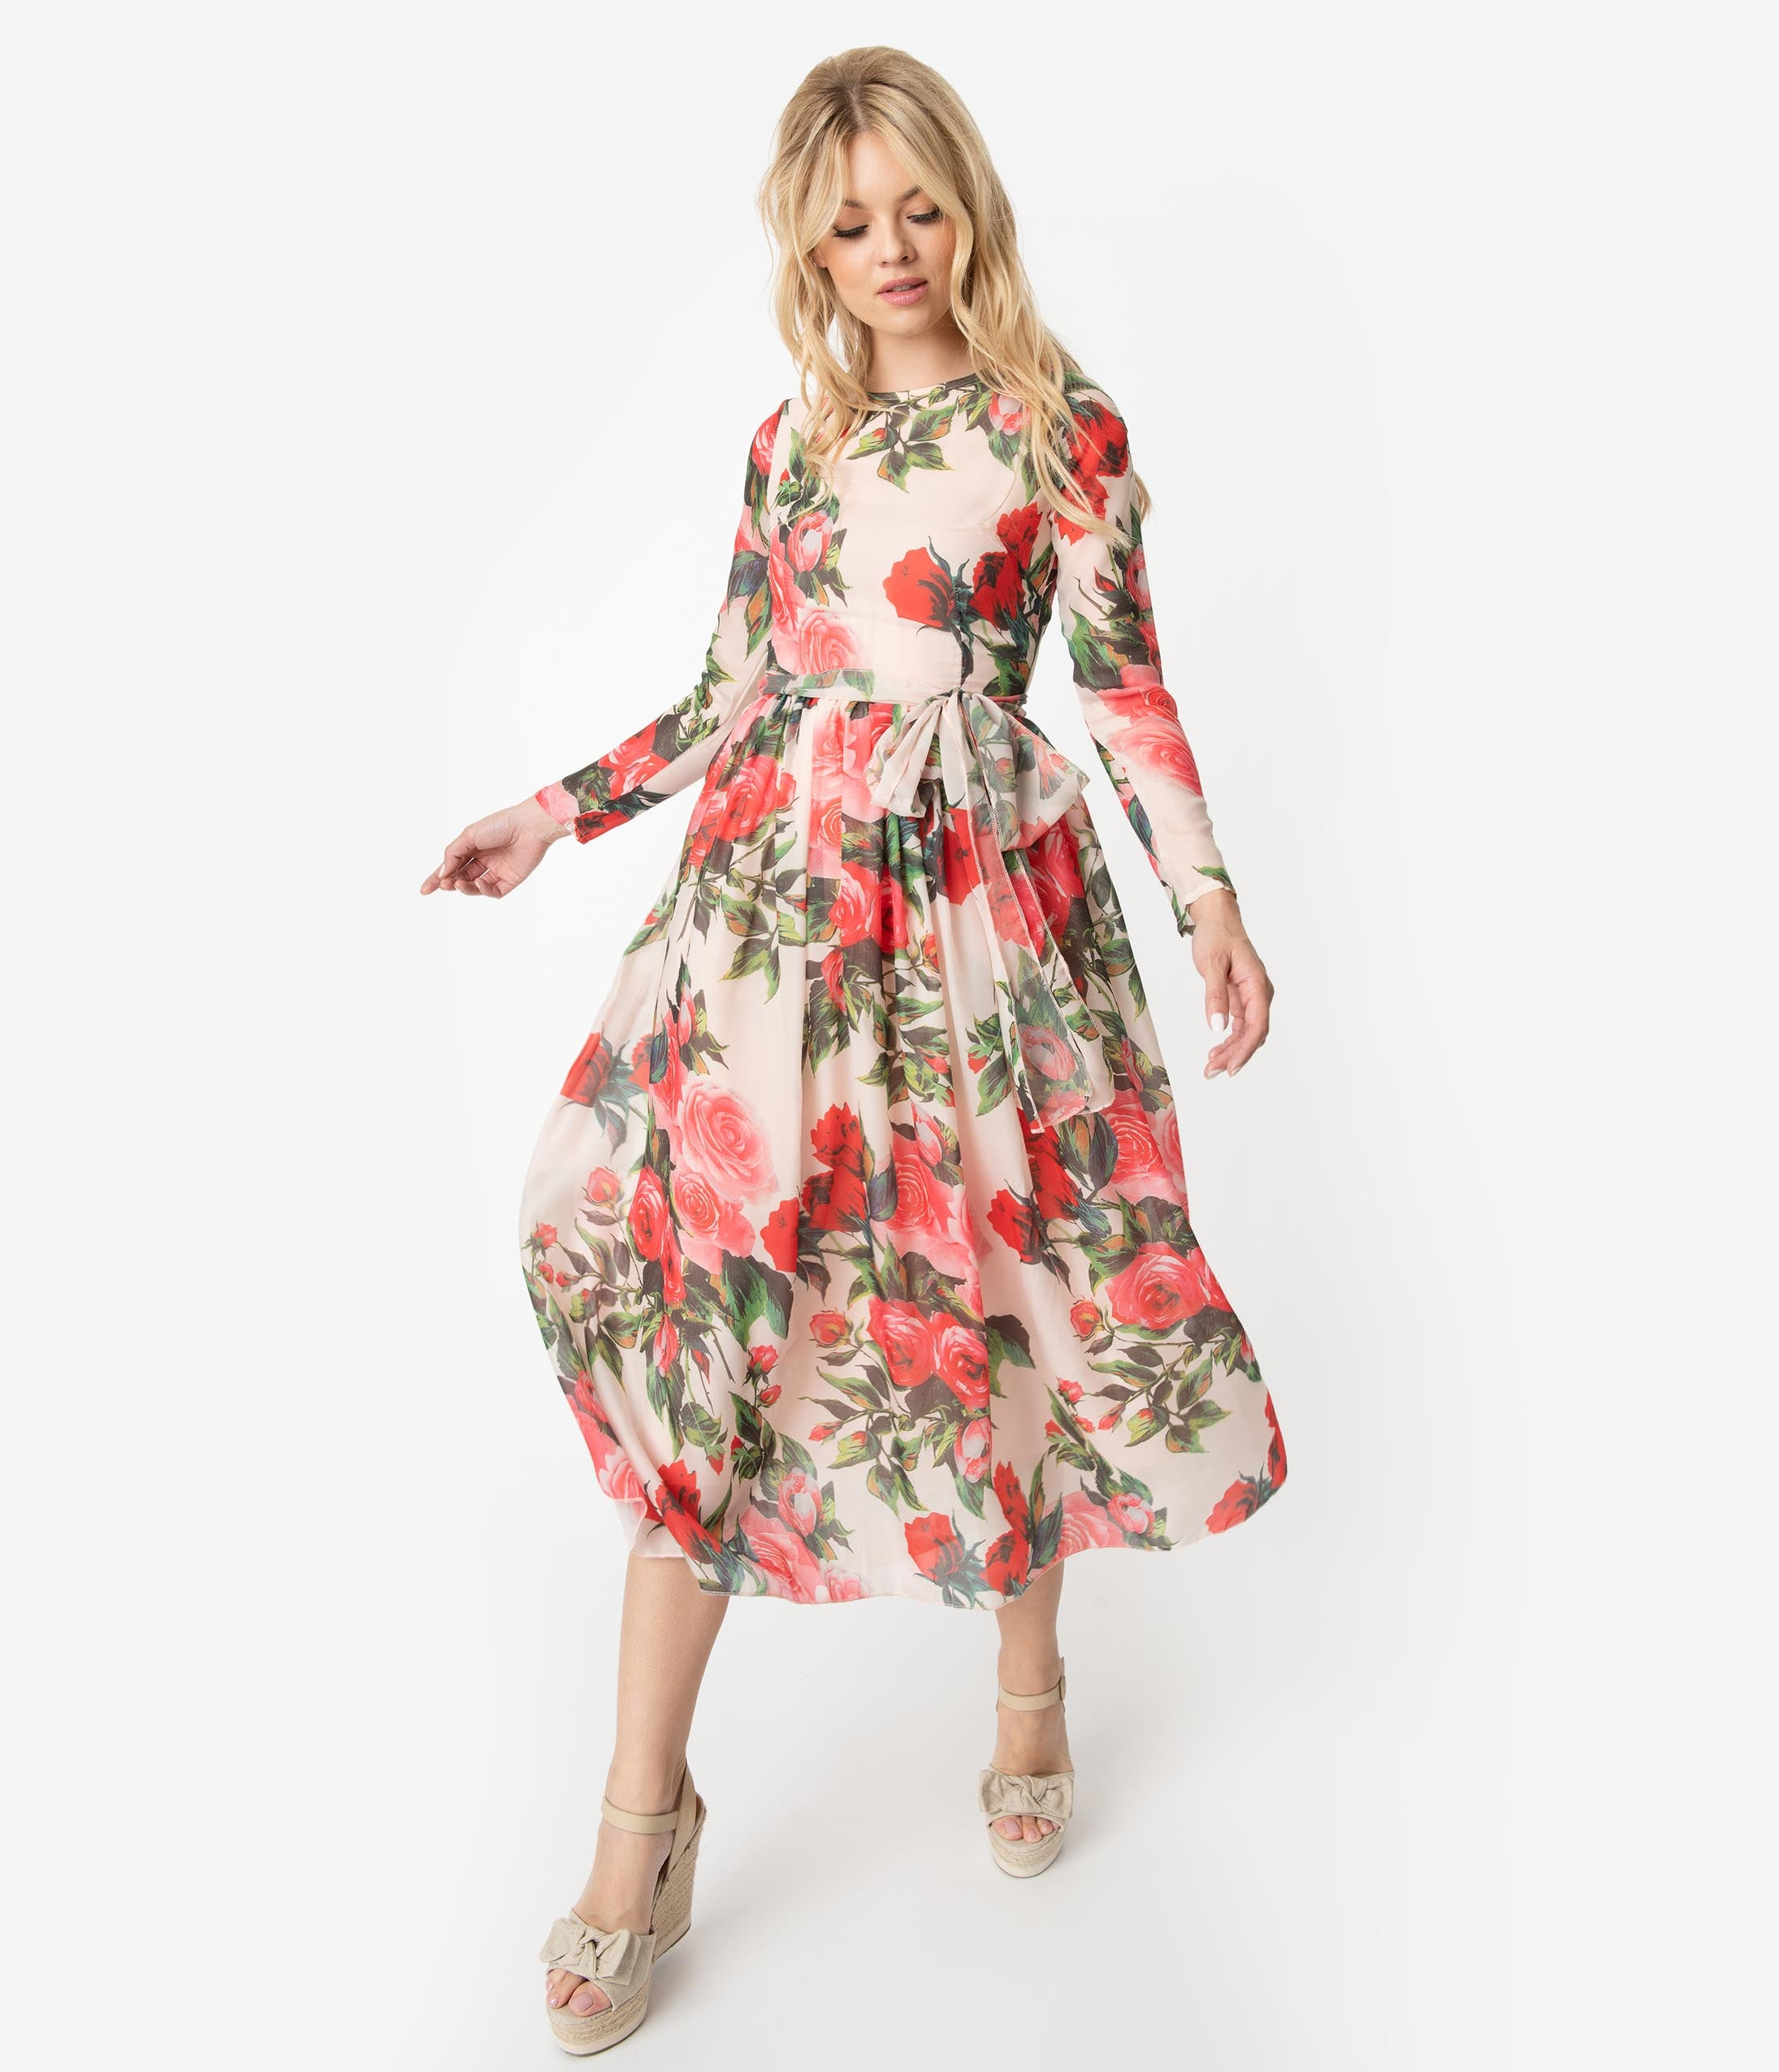 e99fb7be82 1970s Style Peach   Pretty Pink Rose Print Chiffon Long Sleeve Midi Dress